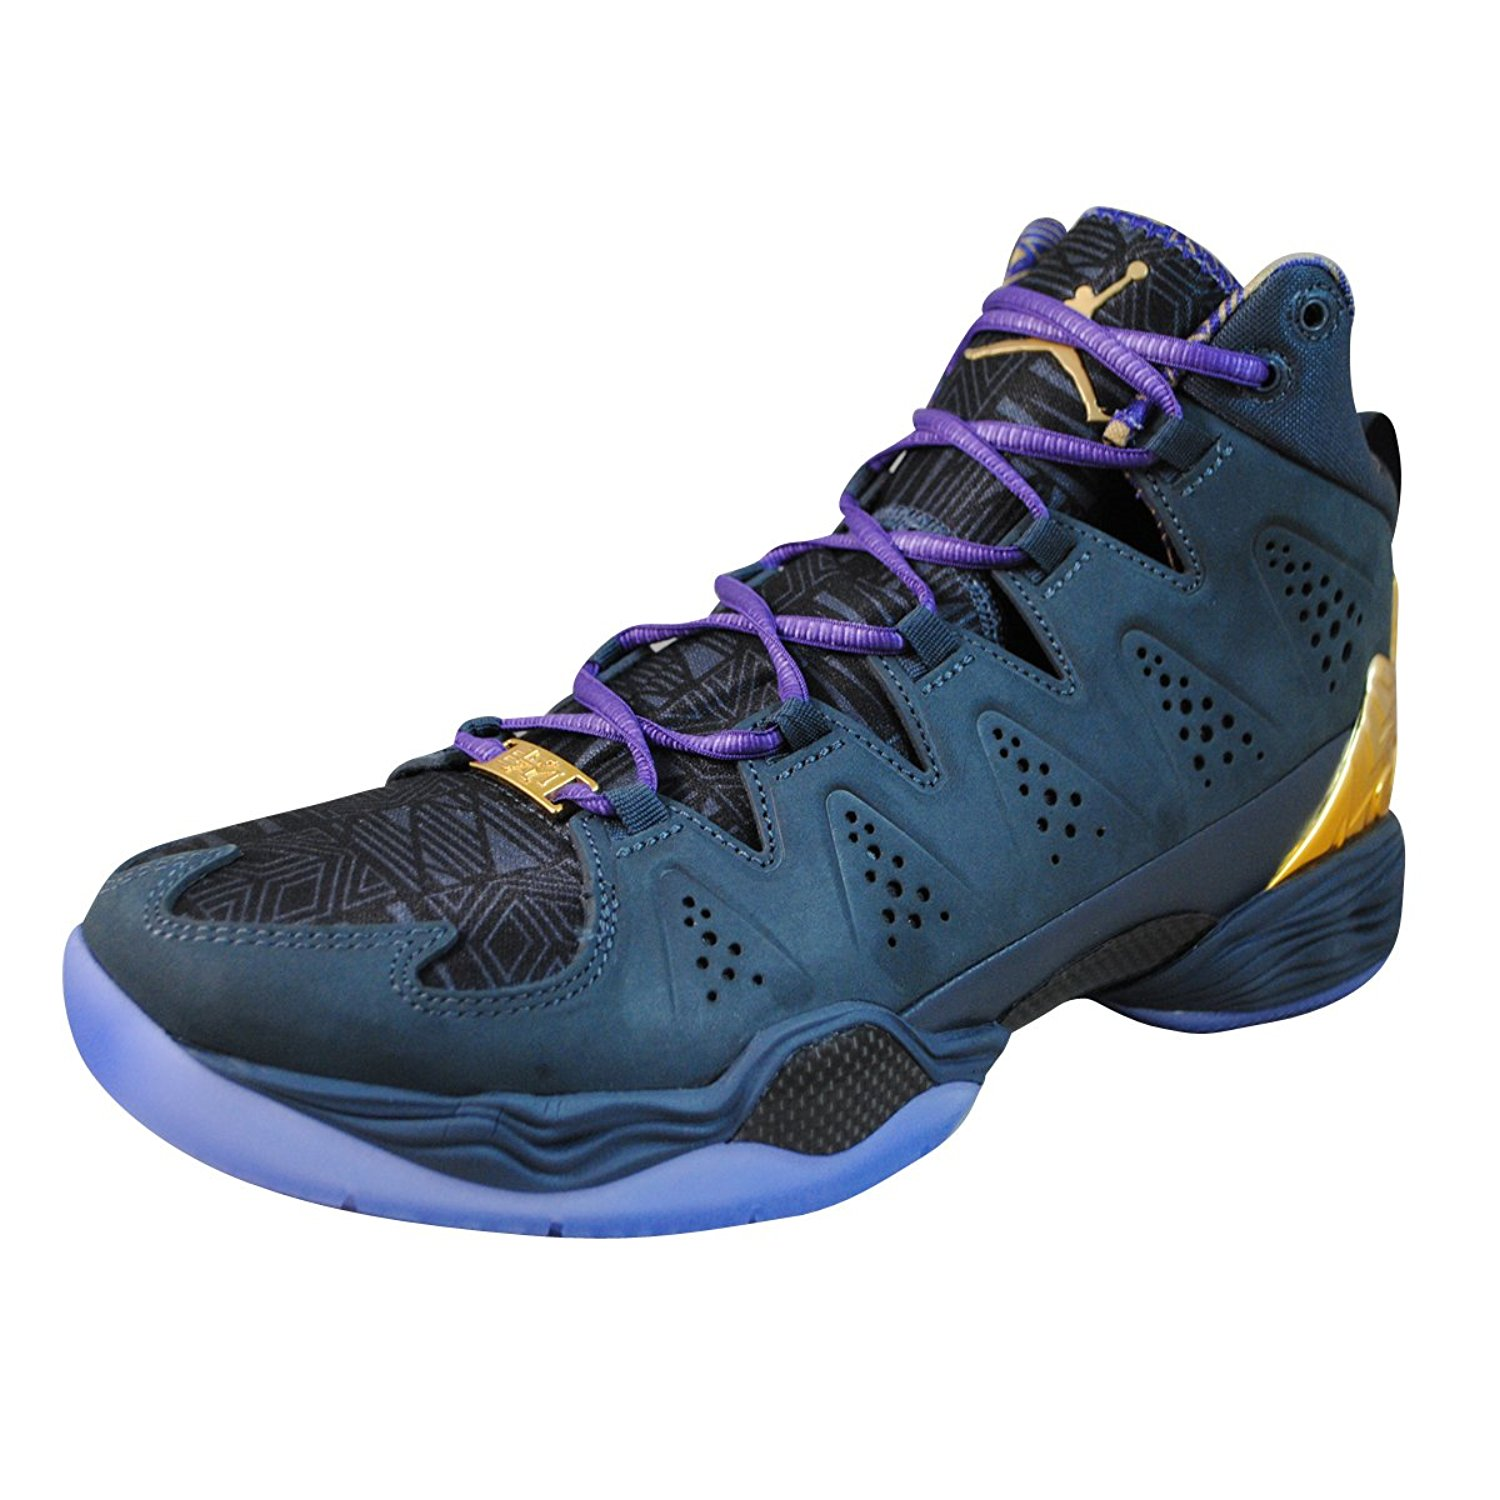 904894e4d388 Buy Nike Mens Jordan Melo M10 BMH Basketball Shoes Magnet Grey Purple Gold  647568-005 Size 9.5 in Cheap Price on m.alibaba.com